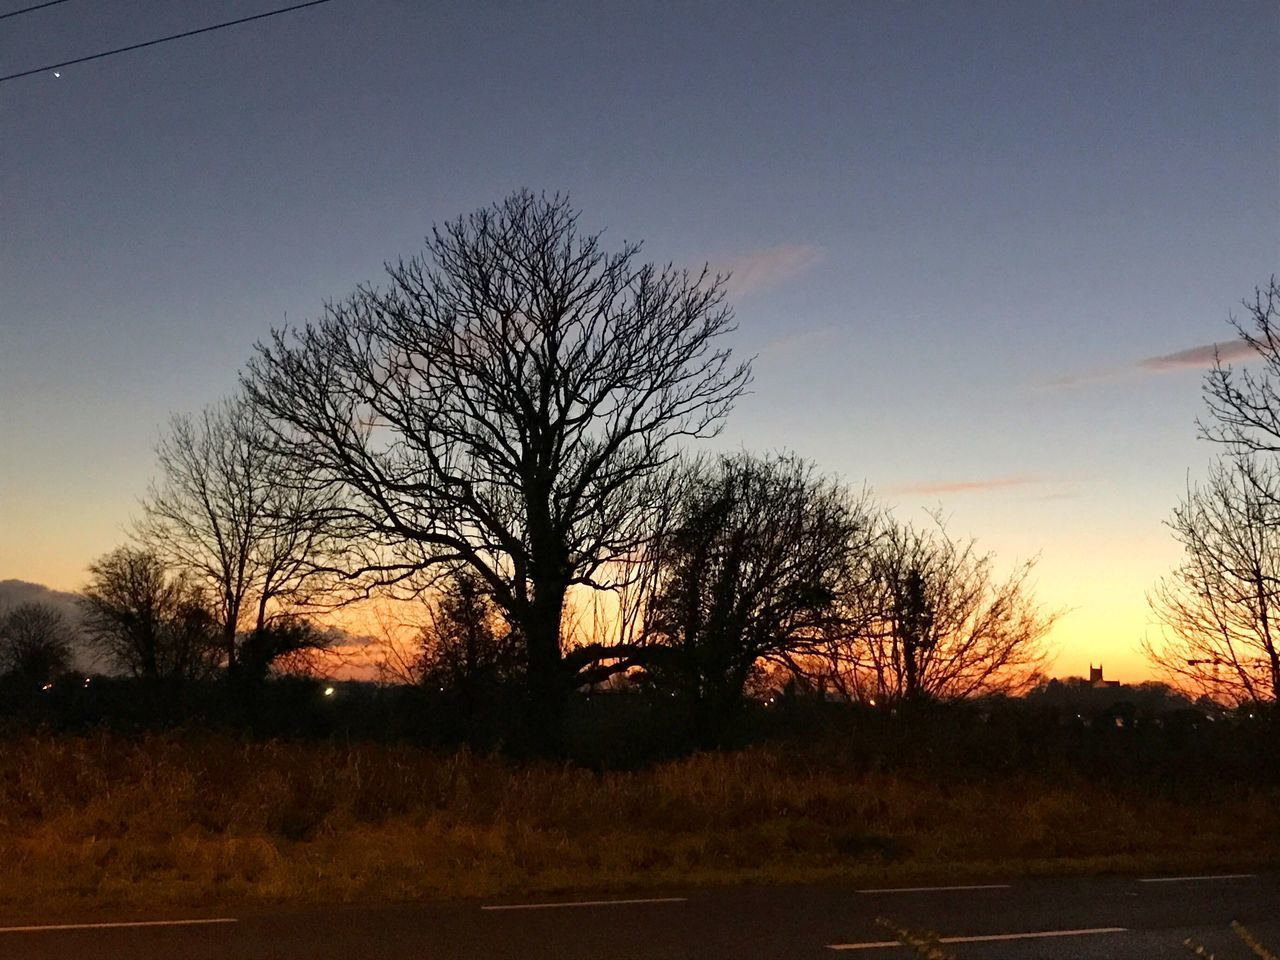 Sunset in Tullamore Bare Tree Tree Sky Sunset Silhouette No People Nature Tranquility Tranquil Scene Outdoors Scenics Beauty In Nature Branch Day